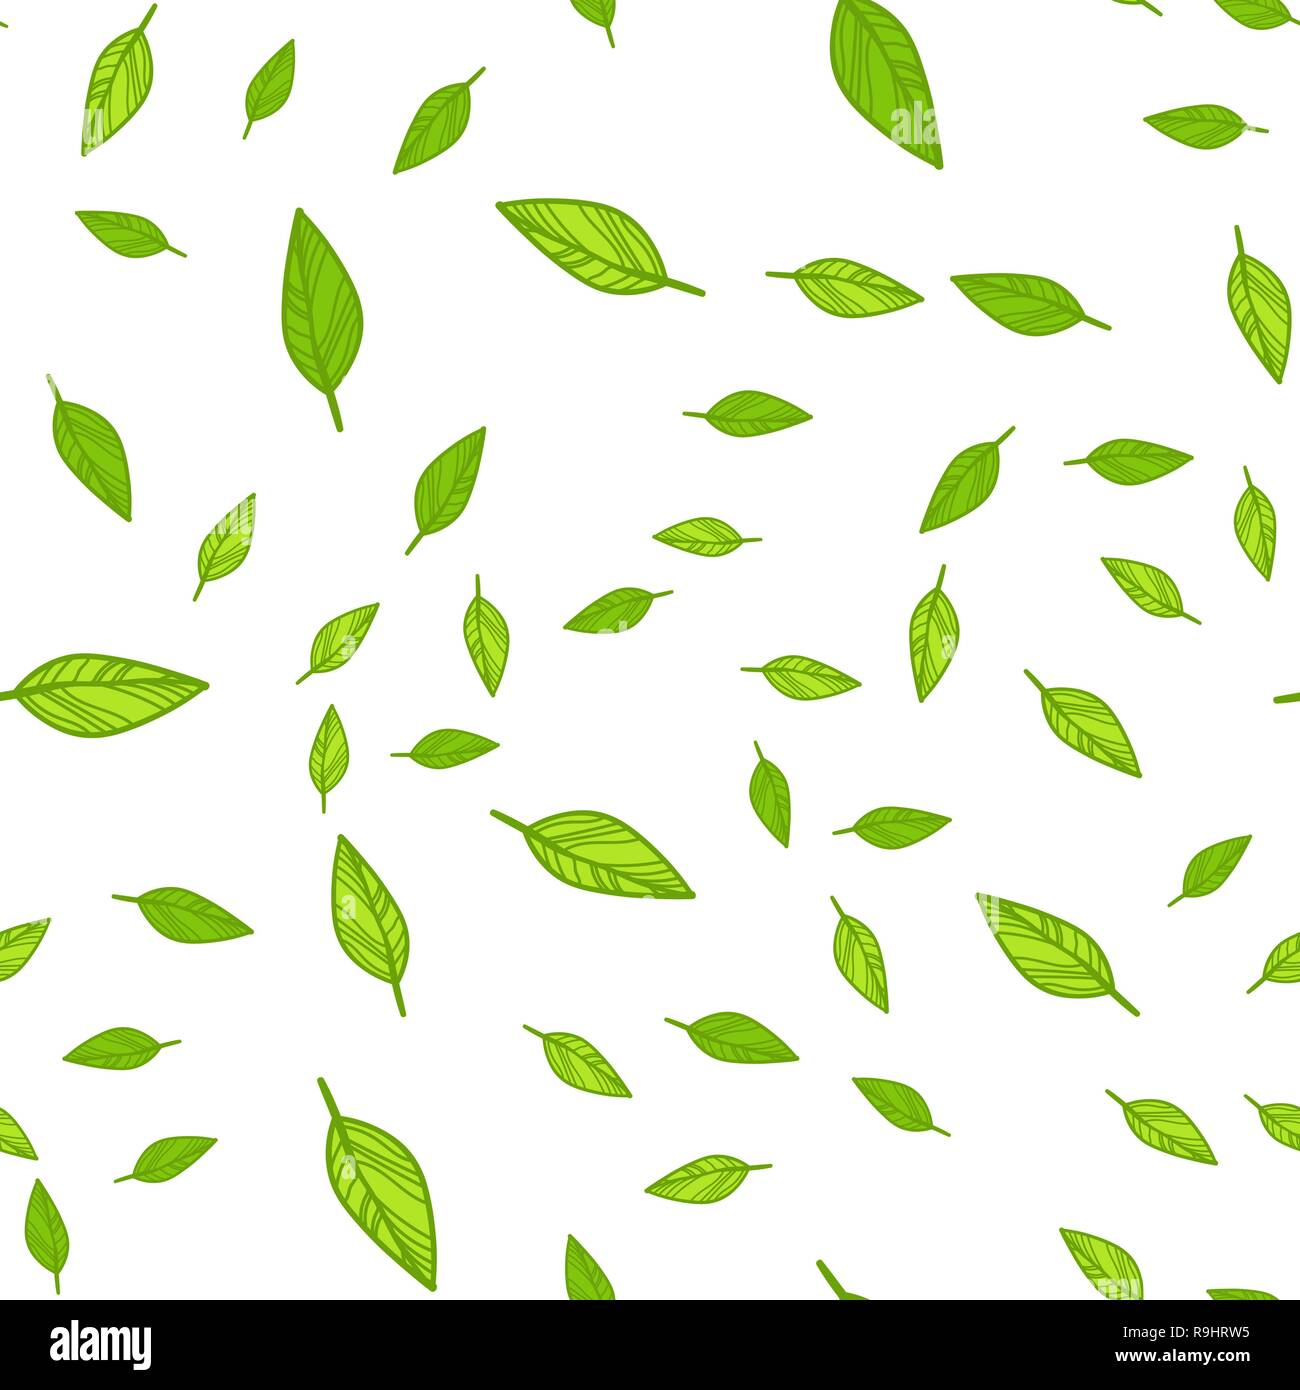 Seamless Pattern Of Green Leaves Doodle Vector Illustration On White Background Stock Vector Image Art Alamy